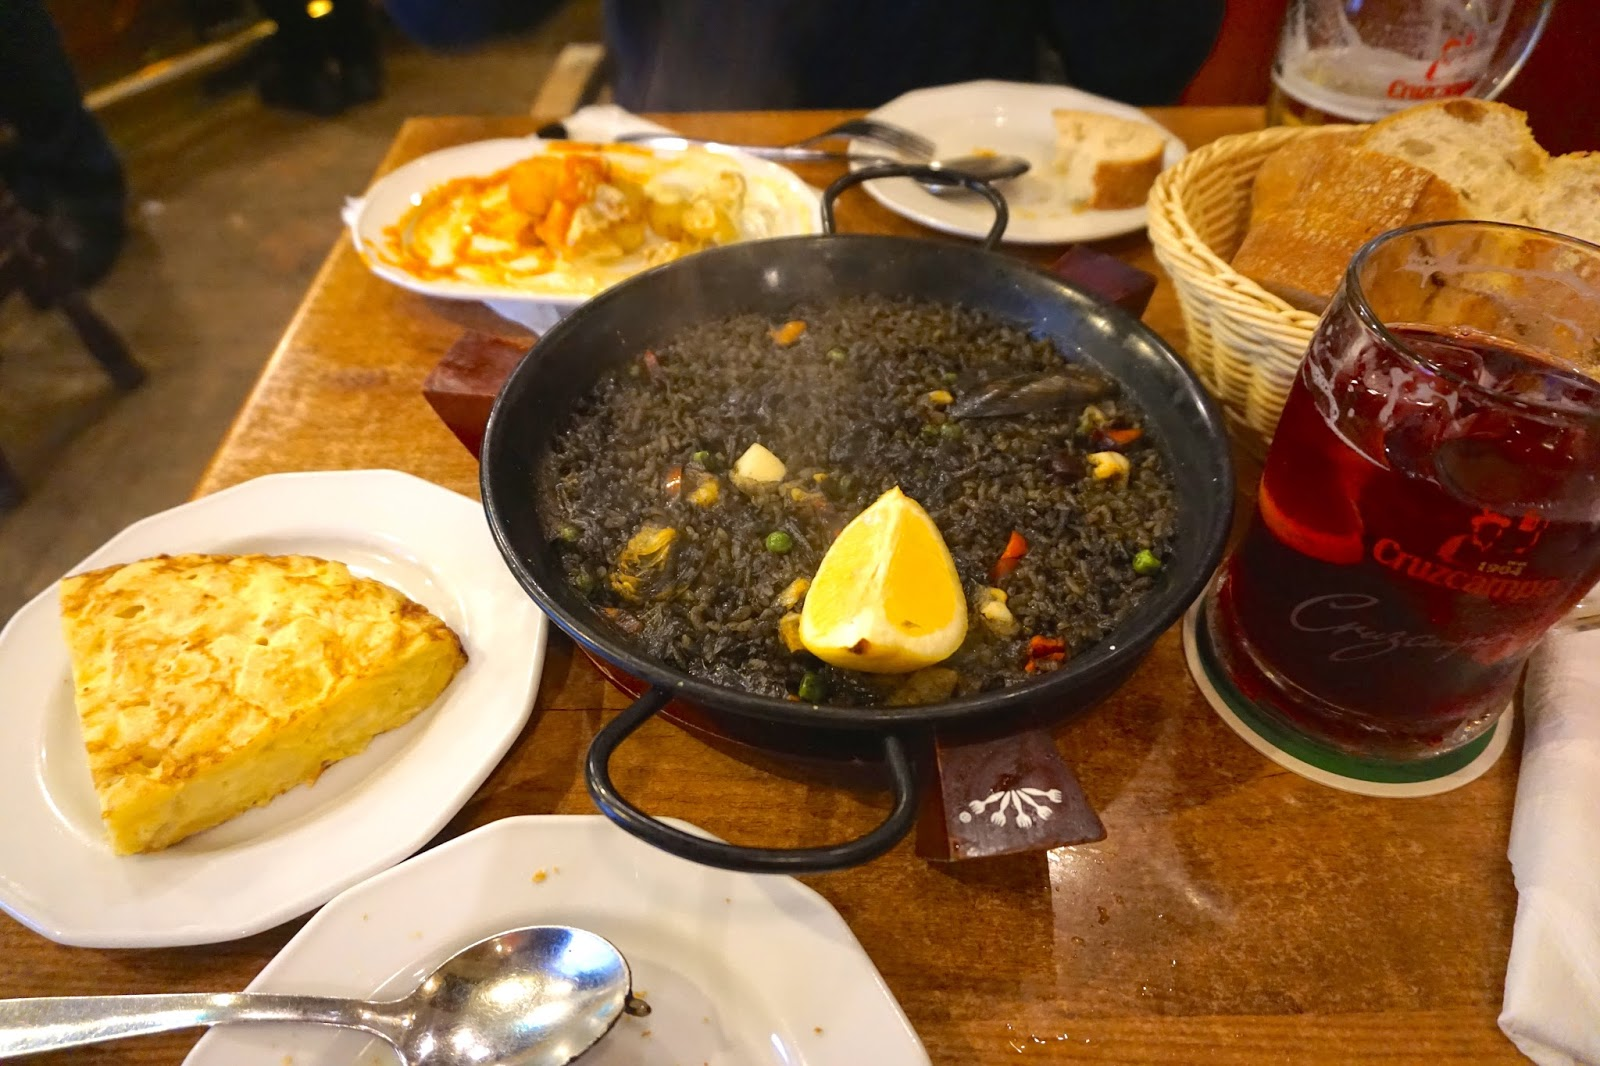 Black squid ink paella arros negre in Madrid